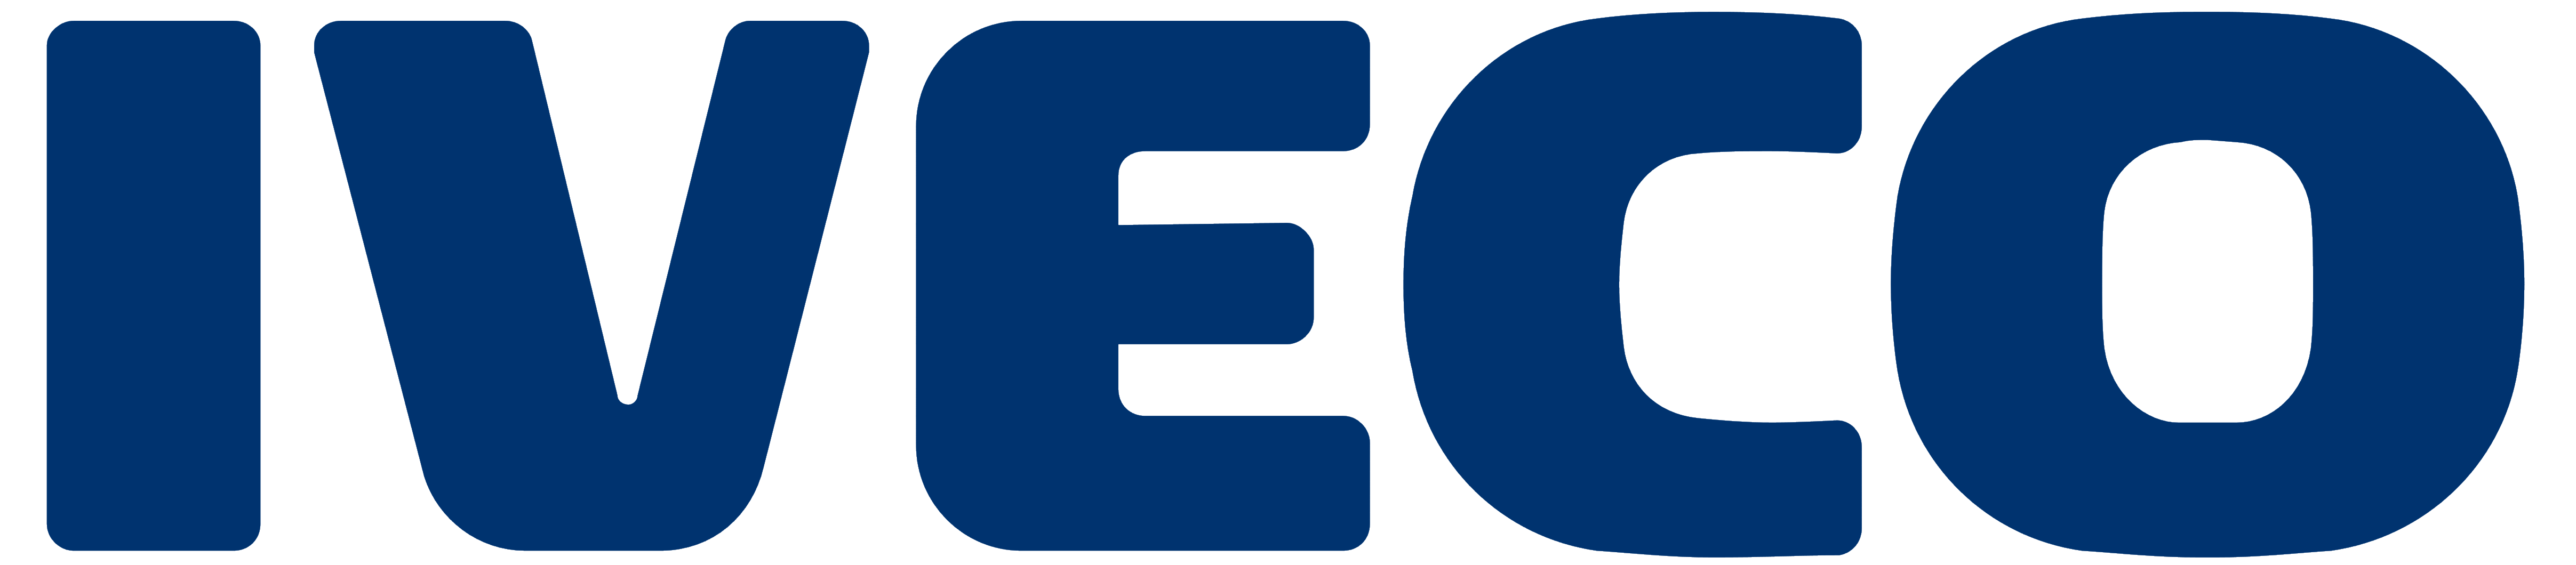 Iveco_logo_logotype-1 (Small Size)